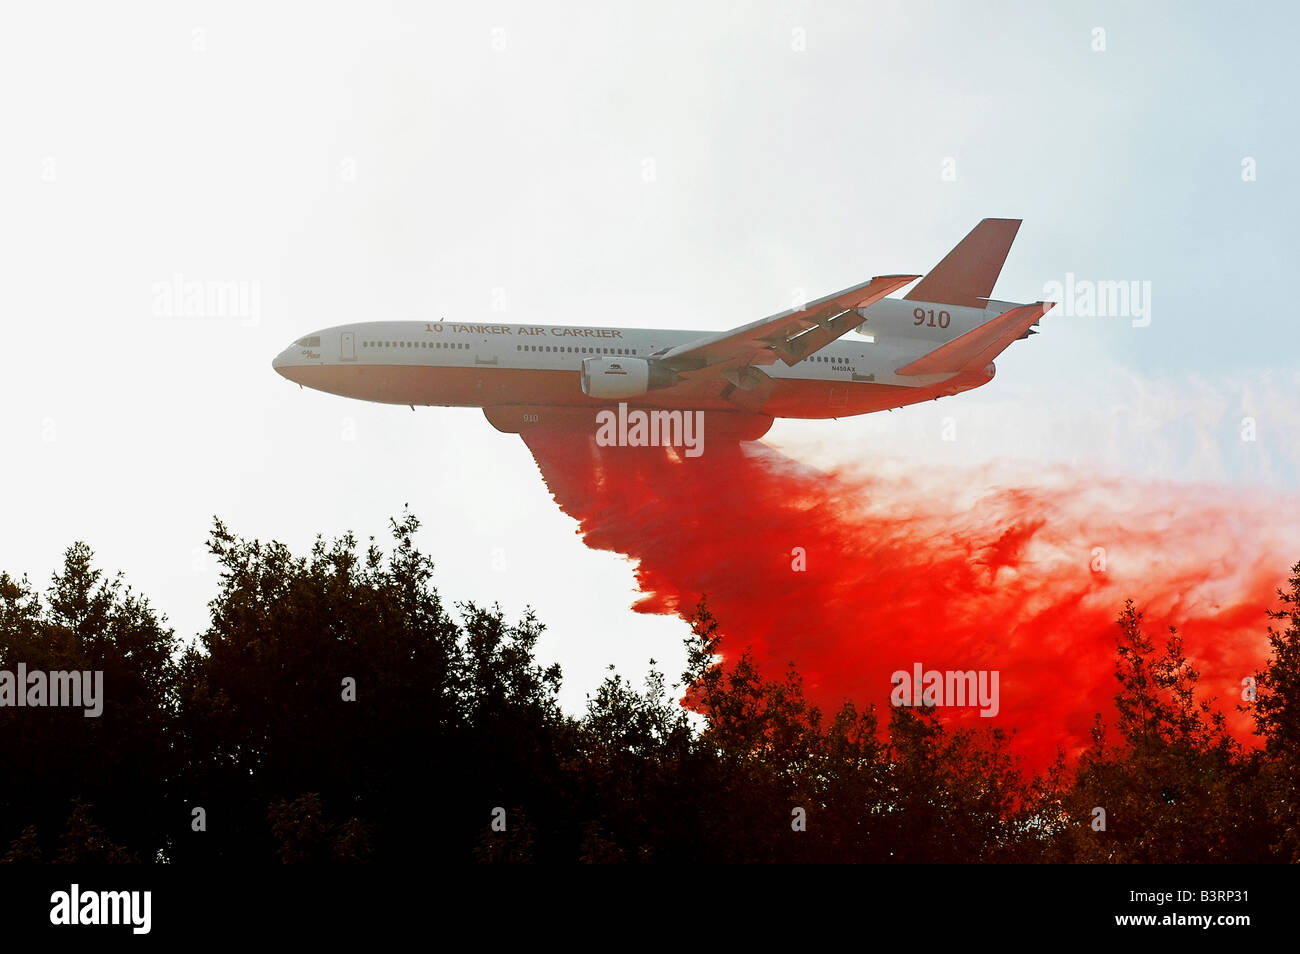 A firefighting DC 10 delivers a load of fire retardant onto a forest fire in California - Stock Image